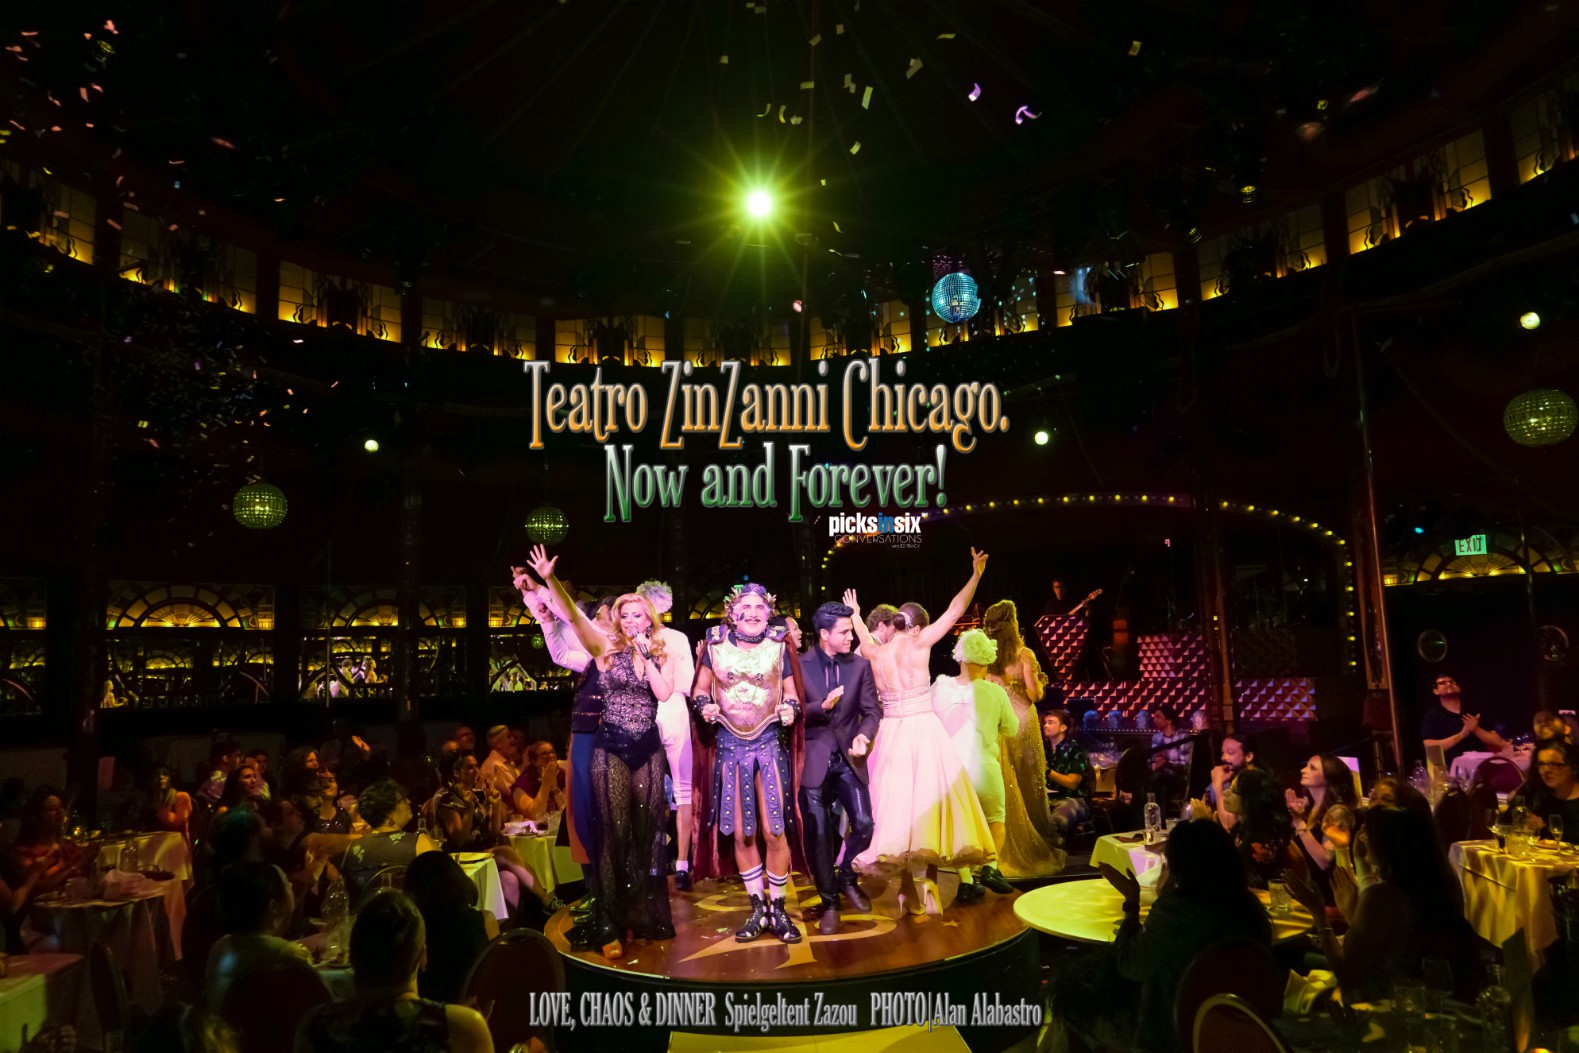 TOP PICK!     Teatro ZinZanni Presents LOVE, CHAOS & DINNER    OPEN RUN     SPIEGELTENT ZAZOU Cambria Hotel        WEBSITE       TICKETS      VIDEO     CONVERSATIONS podcasts available on    Apple Podcasts   ,    Libsyn    and    Stitcher   .  For more reviews, visit:    Theatre In Chicago      ARCHIVE